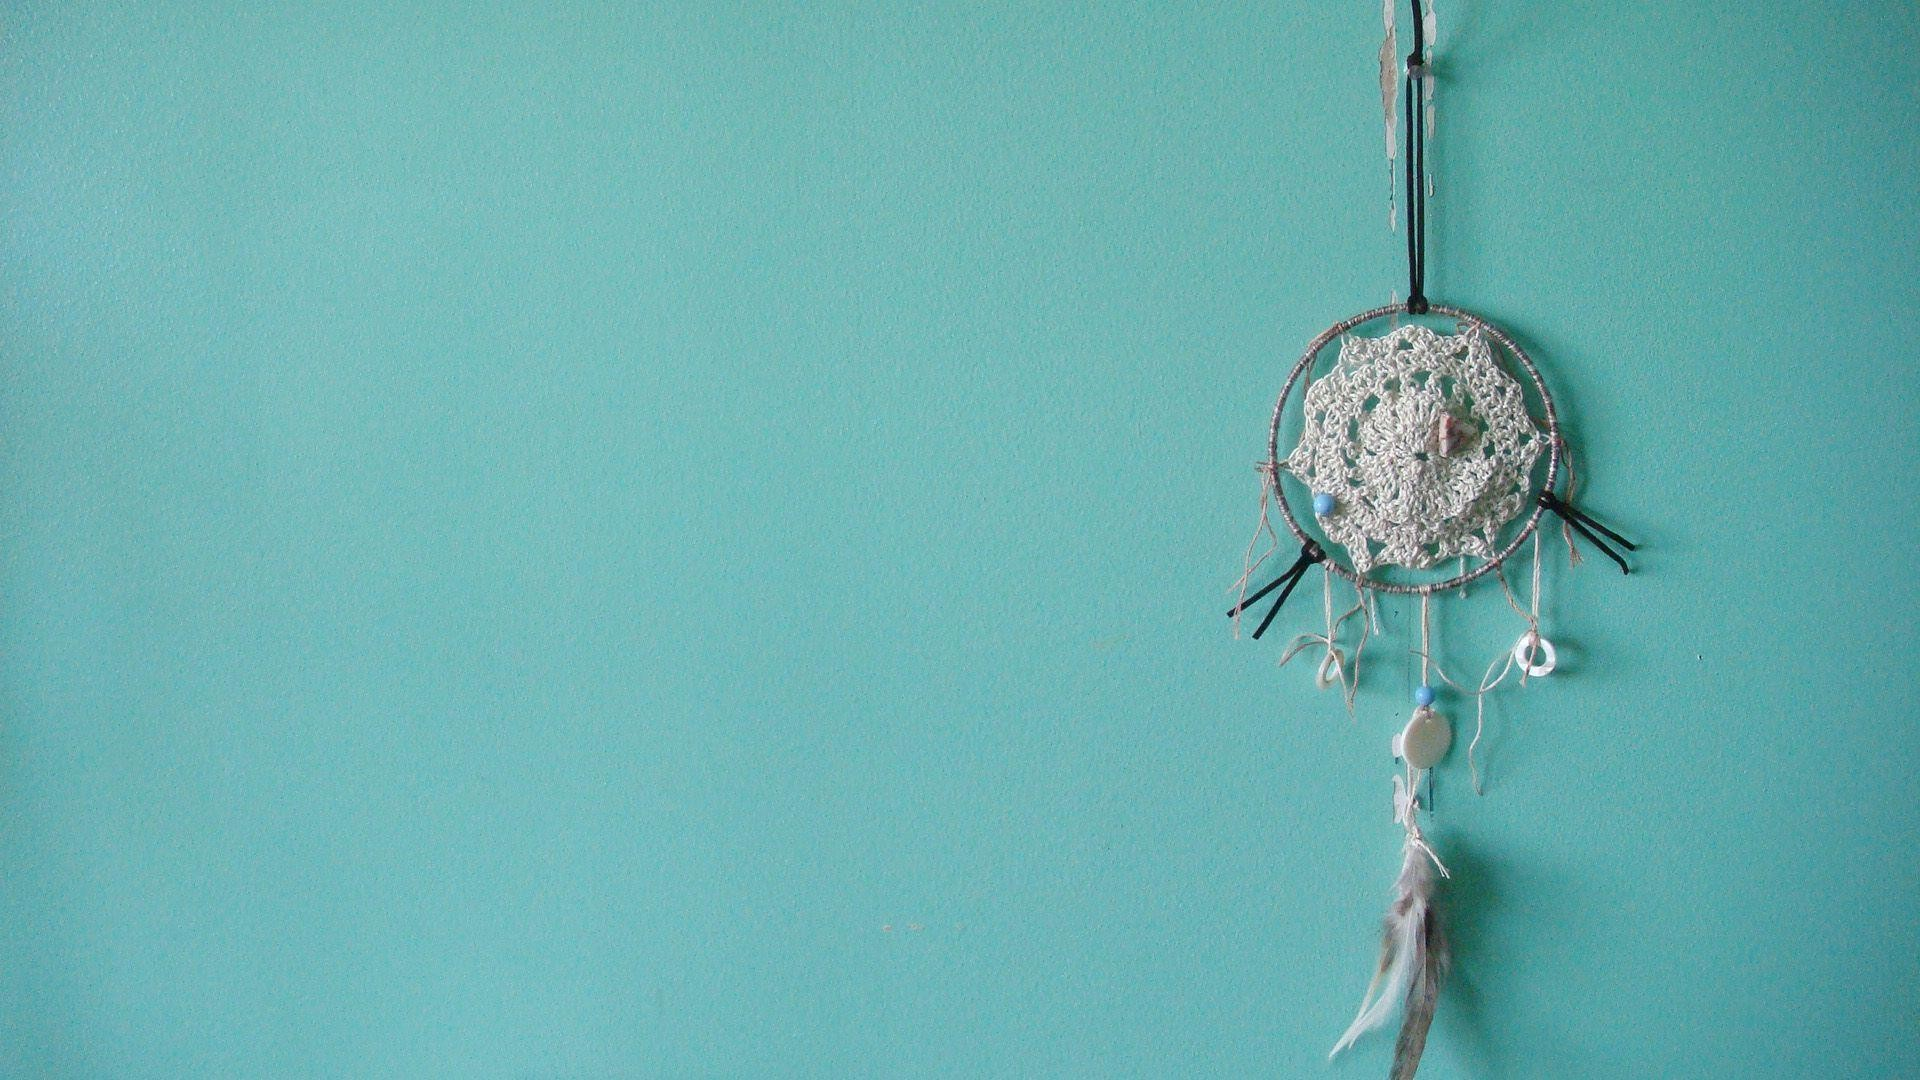 Dream Catcher Tumblr Backgrounds Dreamcatcher Tumblr Background ·① 28